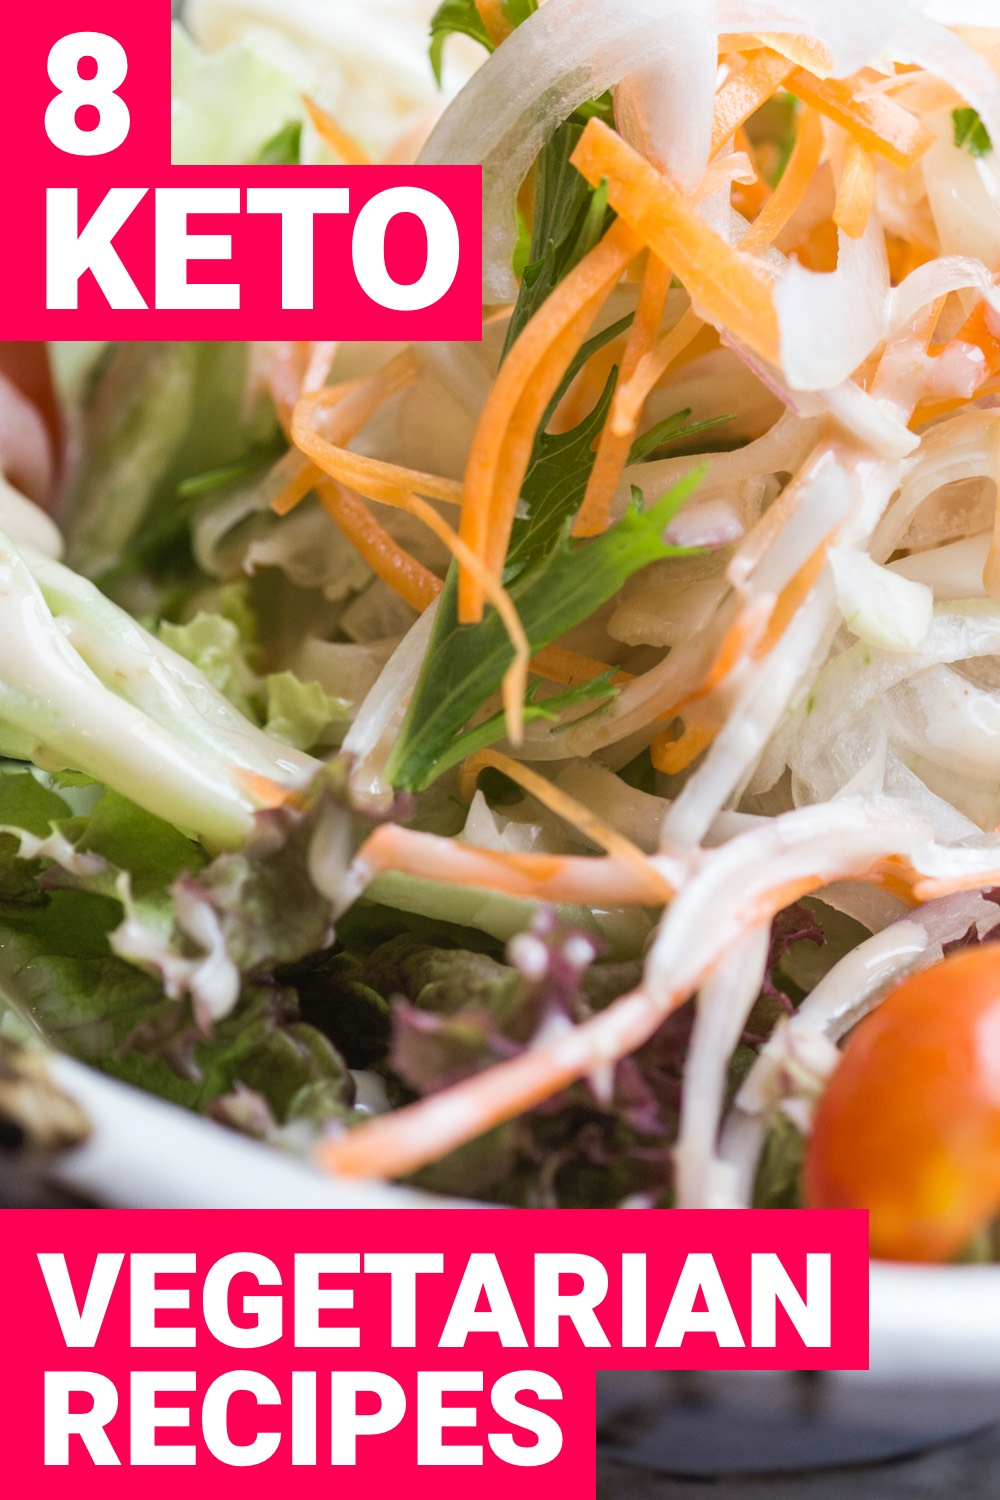 Being a vegetarian on the ketogenic diet can present some challenges. But it is still possible to have success with it. Here are 8 keto vegetarian recipes that everyone can enjoy.